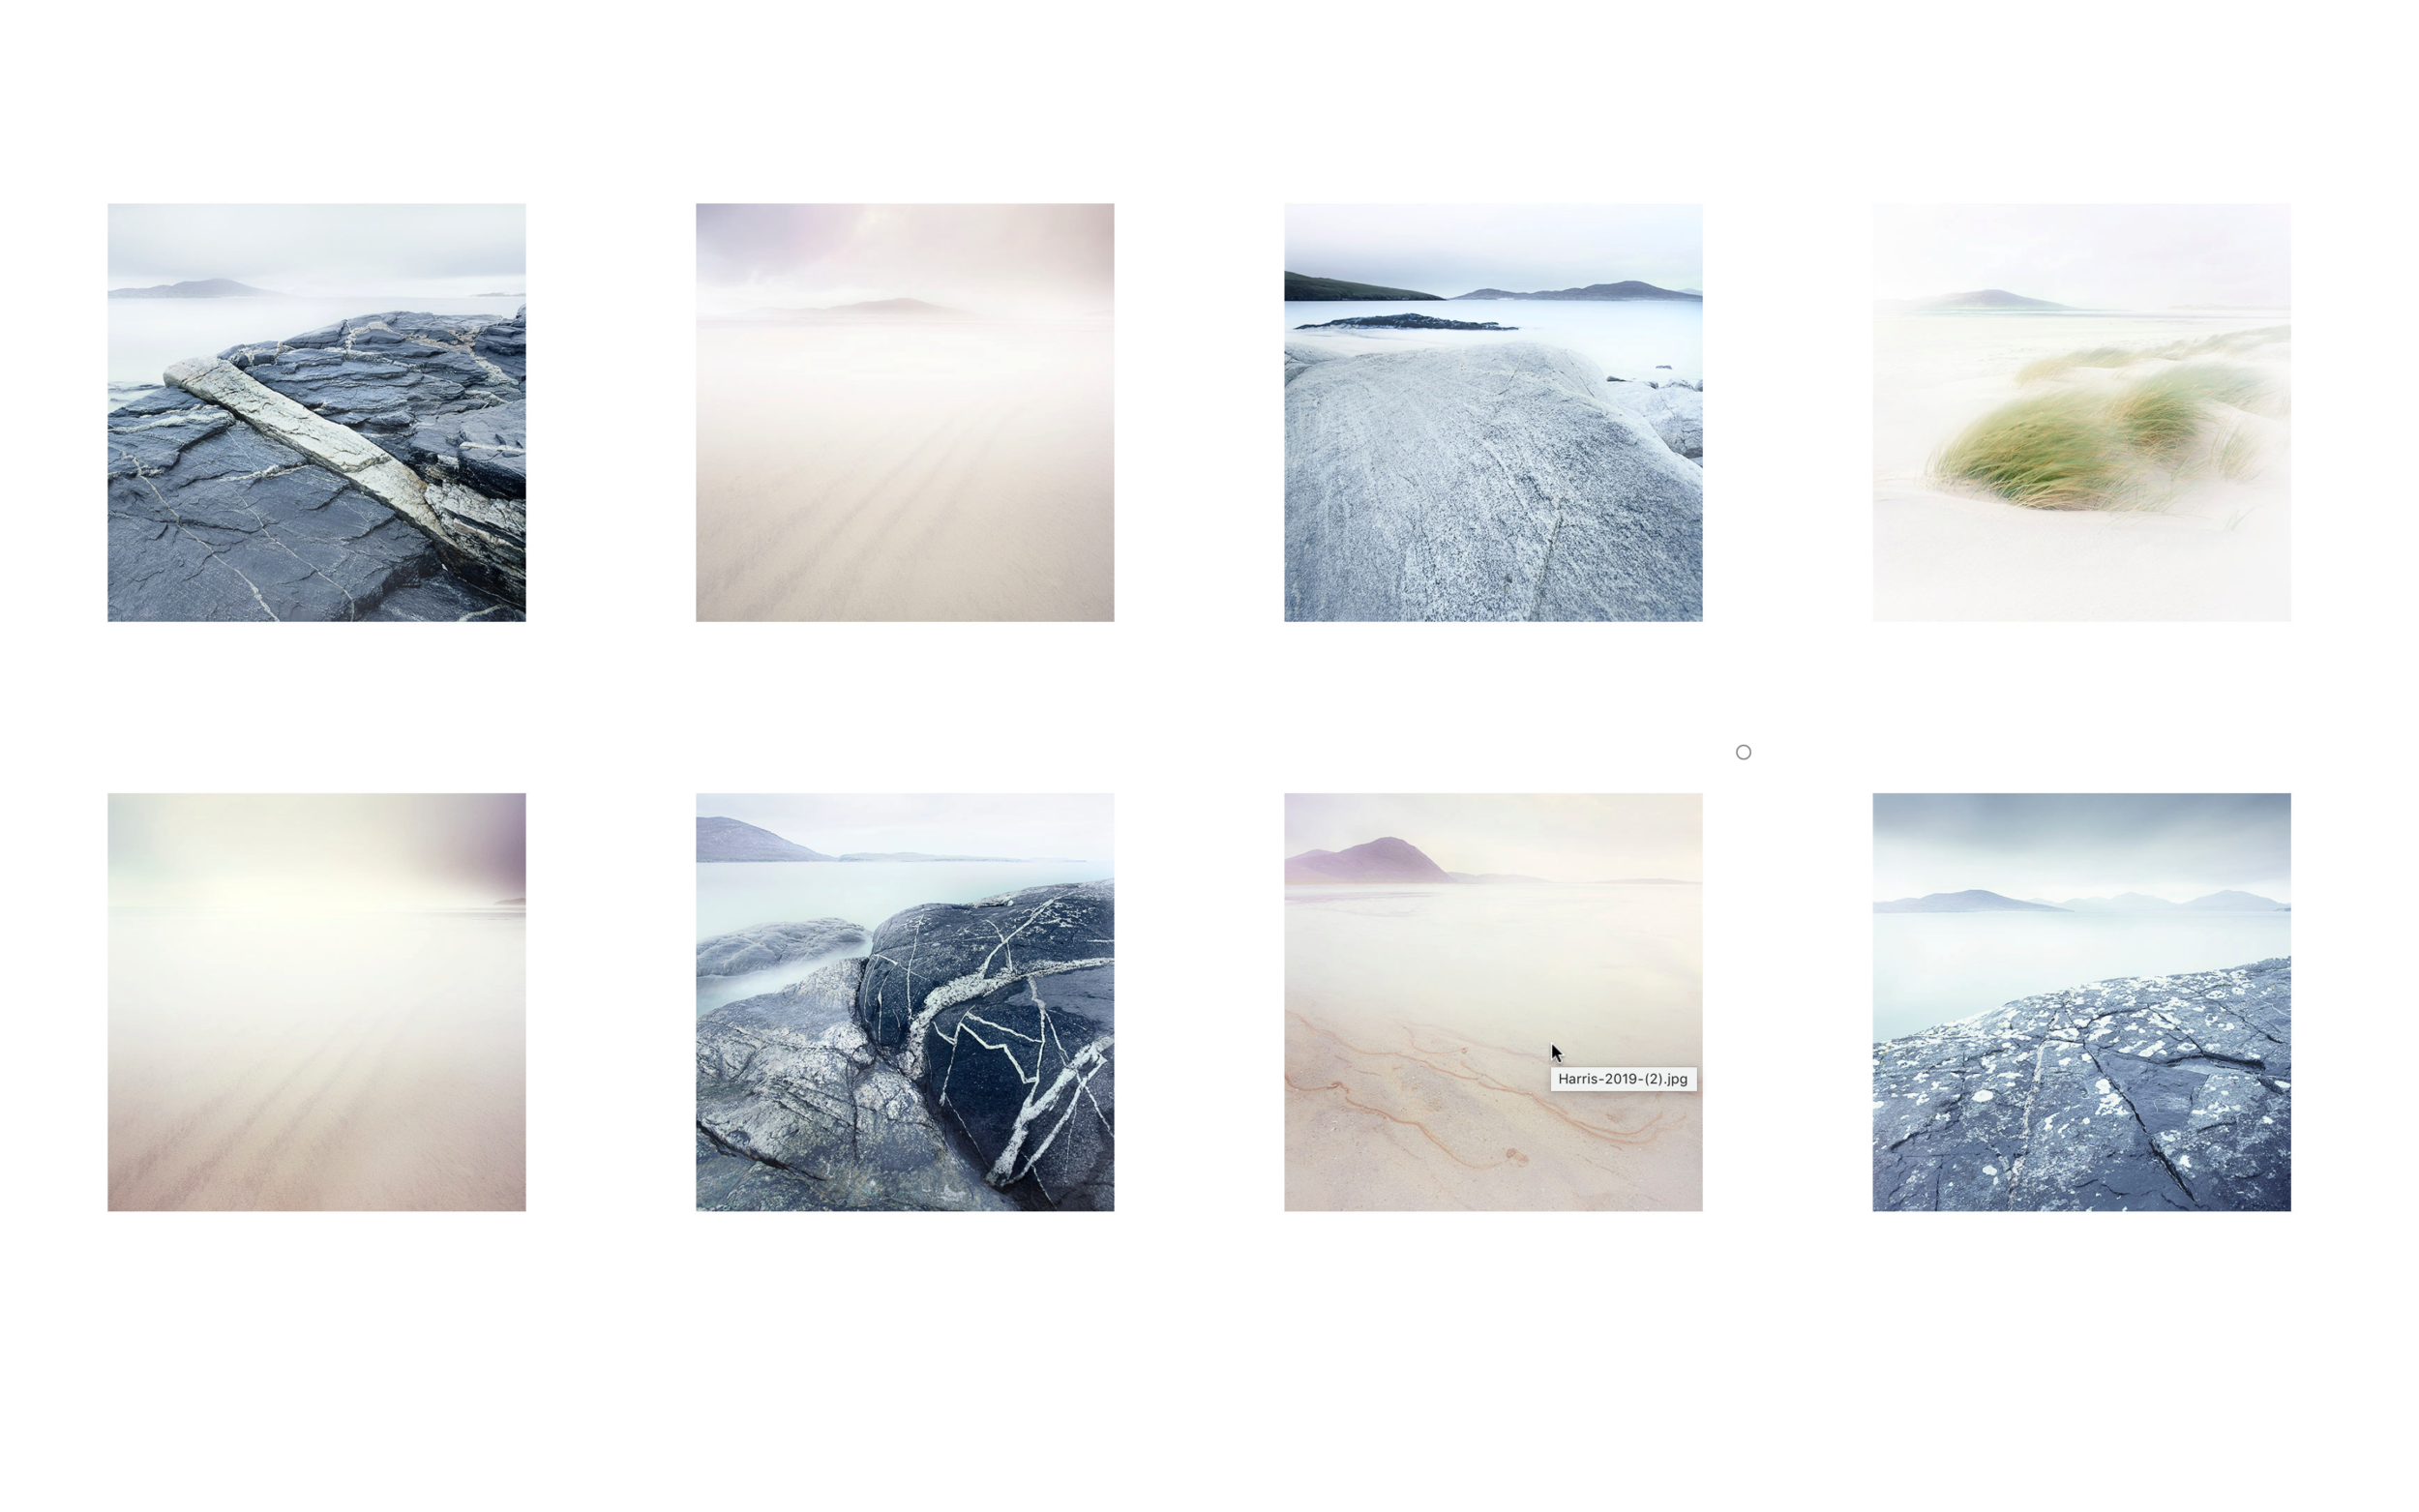 My latest set of Harris images, edited in one day, to try to be as fluid as I could.